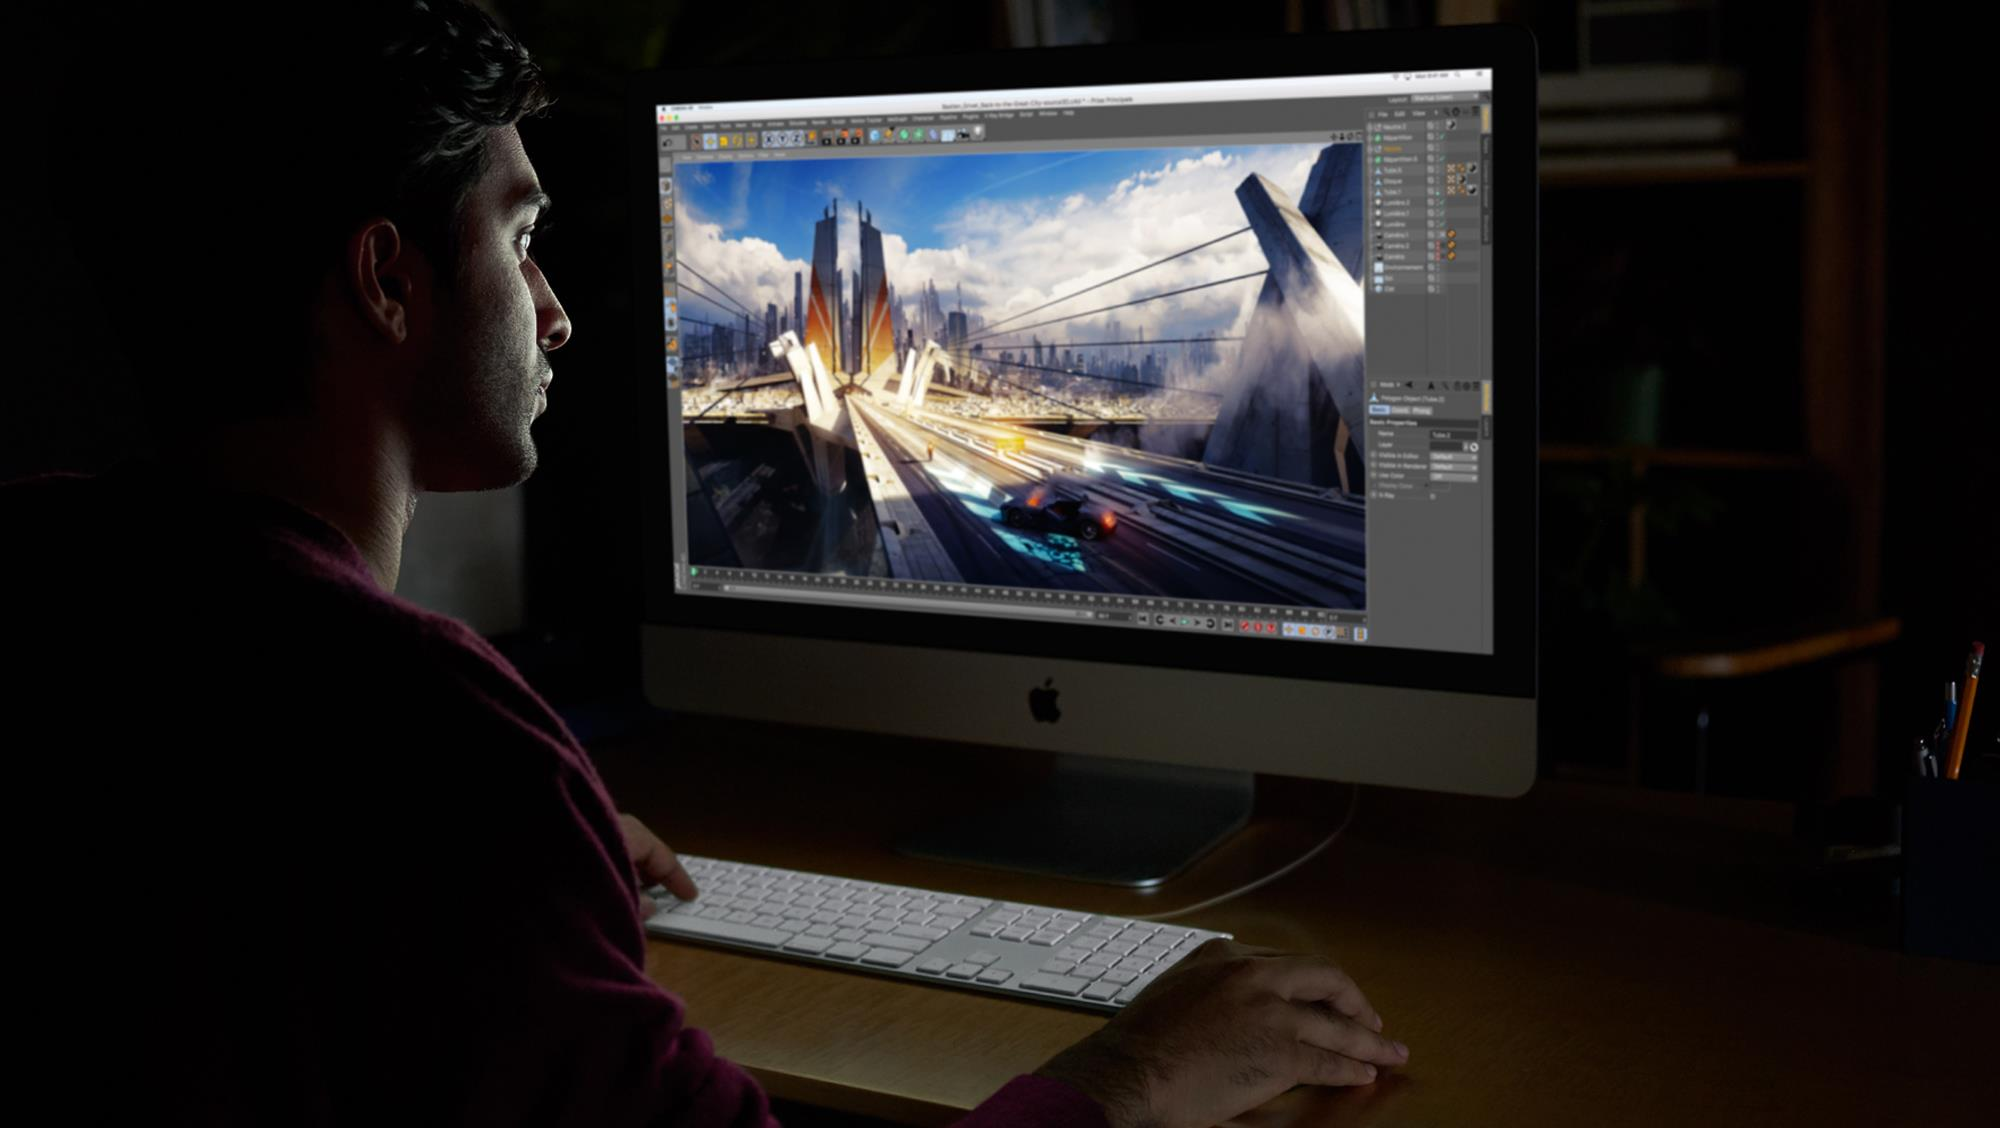 Apple iMac Pro with Retina 5K display - All-in-One (Komplettlösung) - 1 x Xeon W 3 GHz - RAM 64GB - SSD 4TB - Radeon Pro Vega 64 - GigE, 10 GigE - WLAN: 802,11a/b/g/n/ac, Bluetooth 4,2 - OS X 10,13 Sierra - Monitor: LED 68,6 cm (27) 5120 x 2880 (5K) - Tas